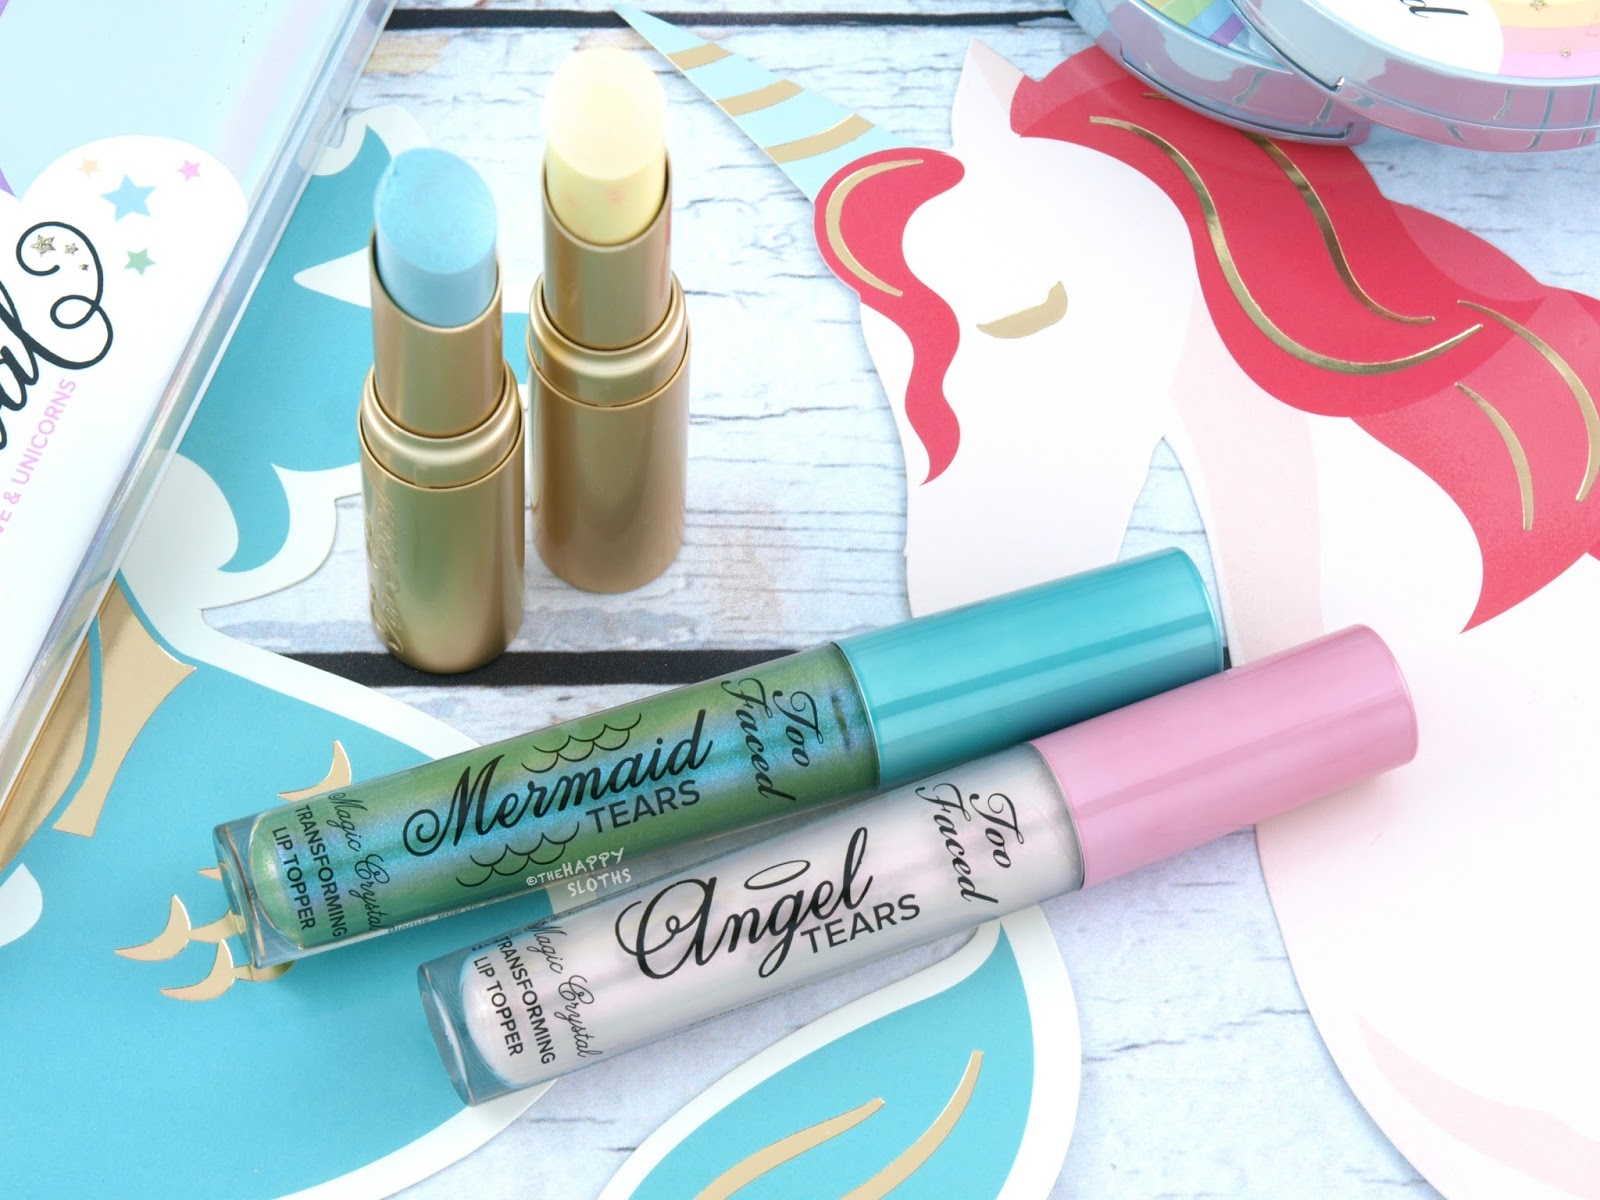 Too Faced | Life's A Festival Le Creme Mystical Lipstick & Magic Crystal Lip Topper : Review and Swatches